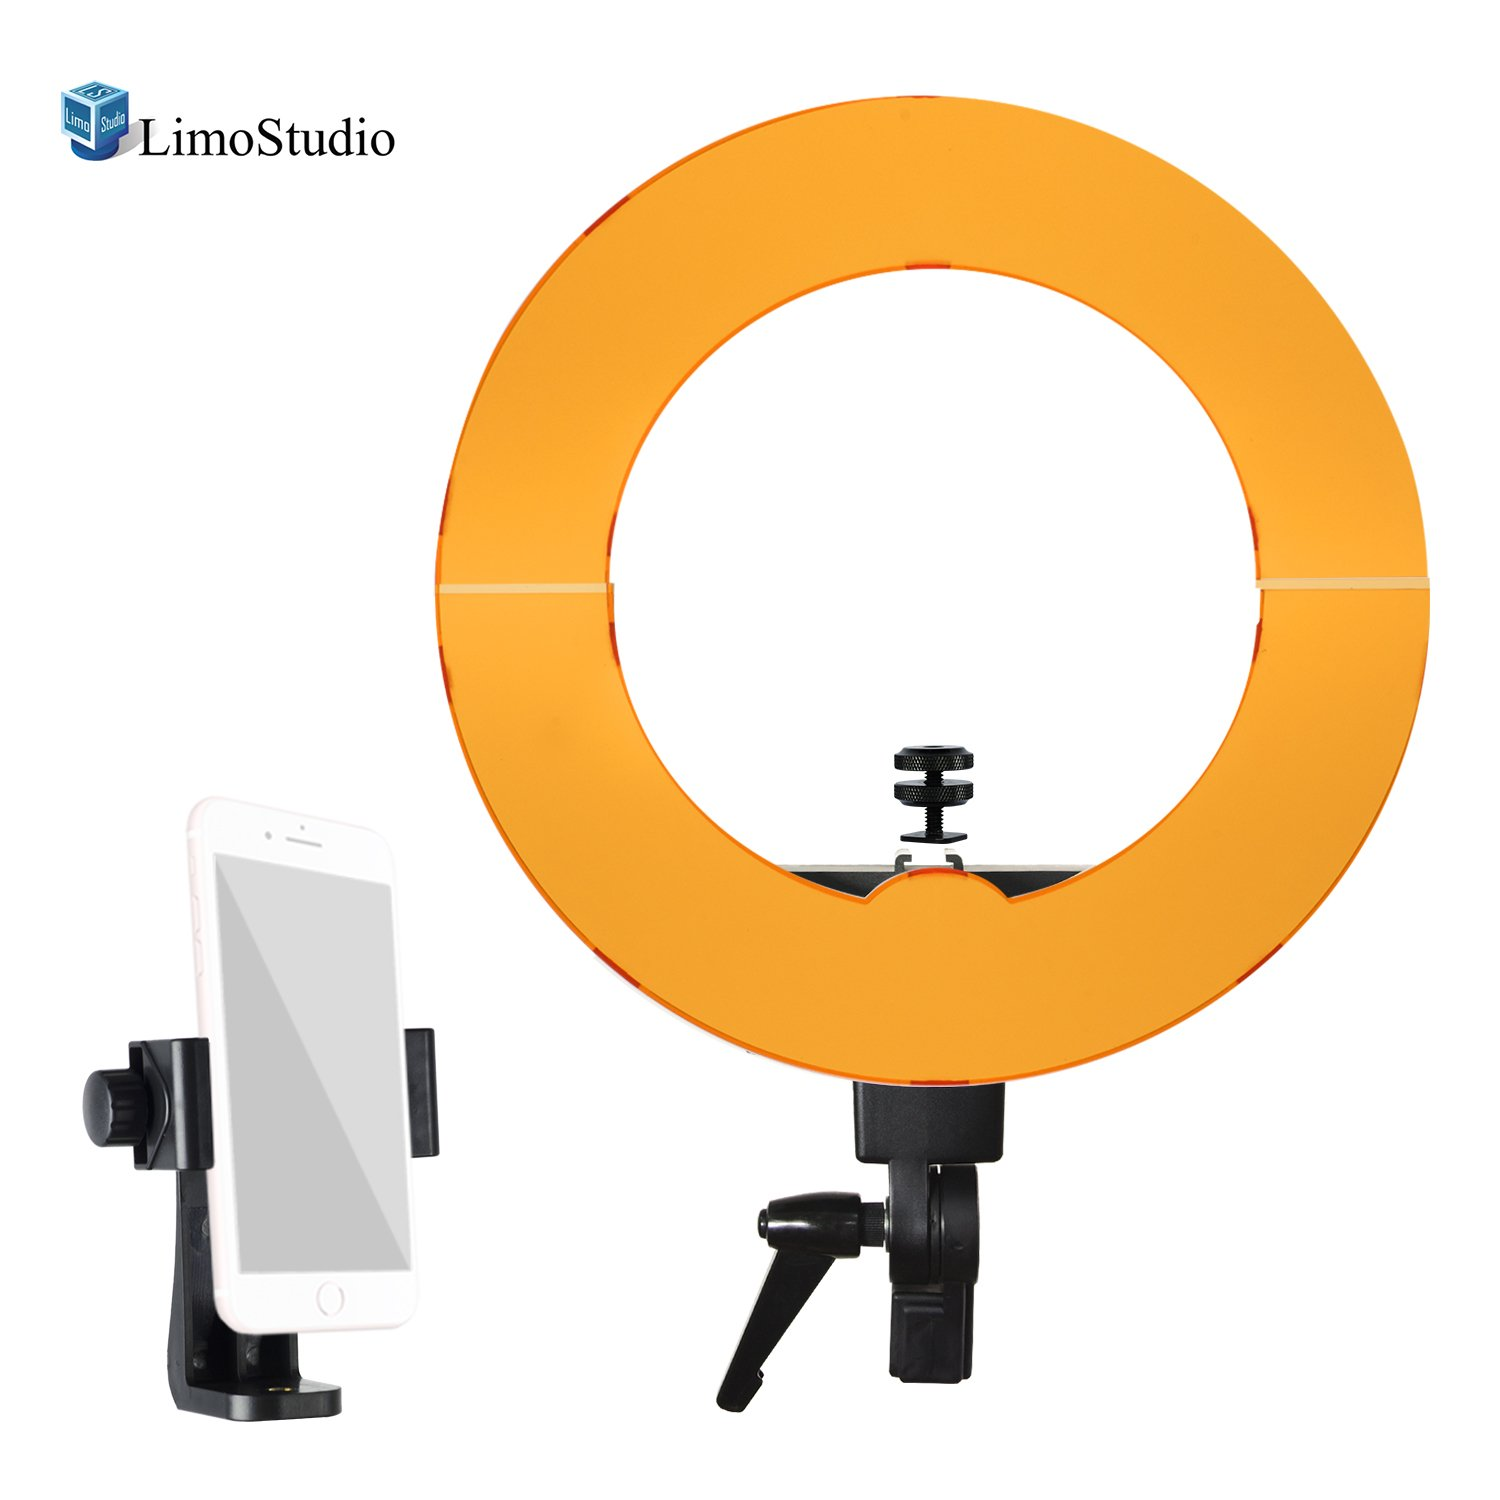 LimoStudio 14-inch Diameter LED Continuous Round Ring Light with Tripod Mount Clip Cell Phone Holder & 1/4'' Hot Shoe Mount Adapter Holder with White and Orange Diffuser Cover, AGG2466